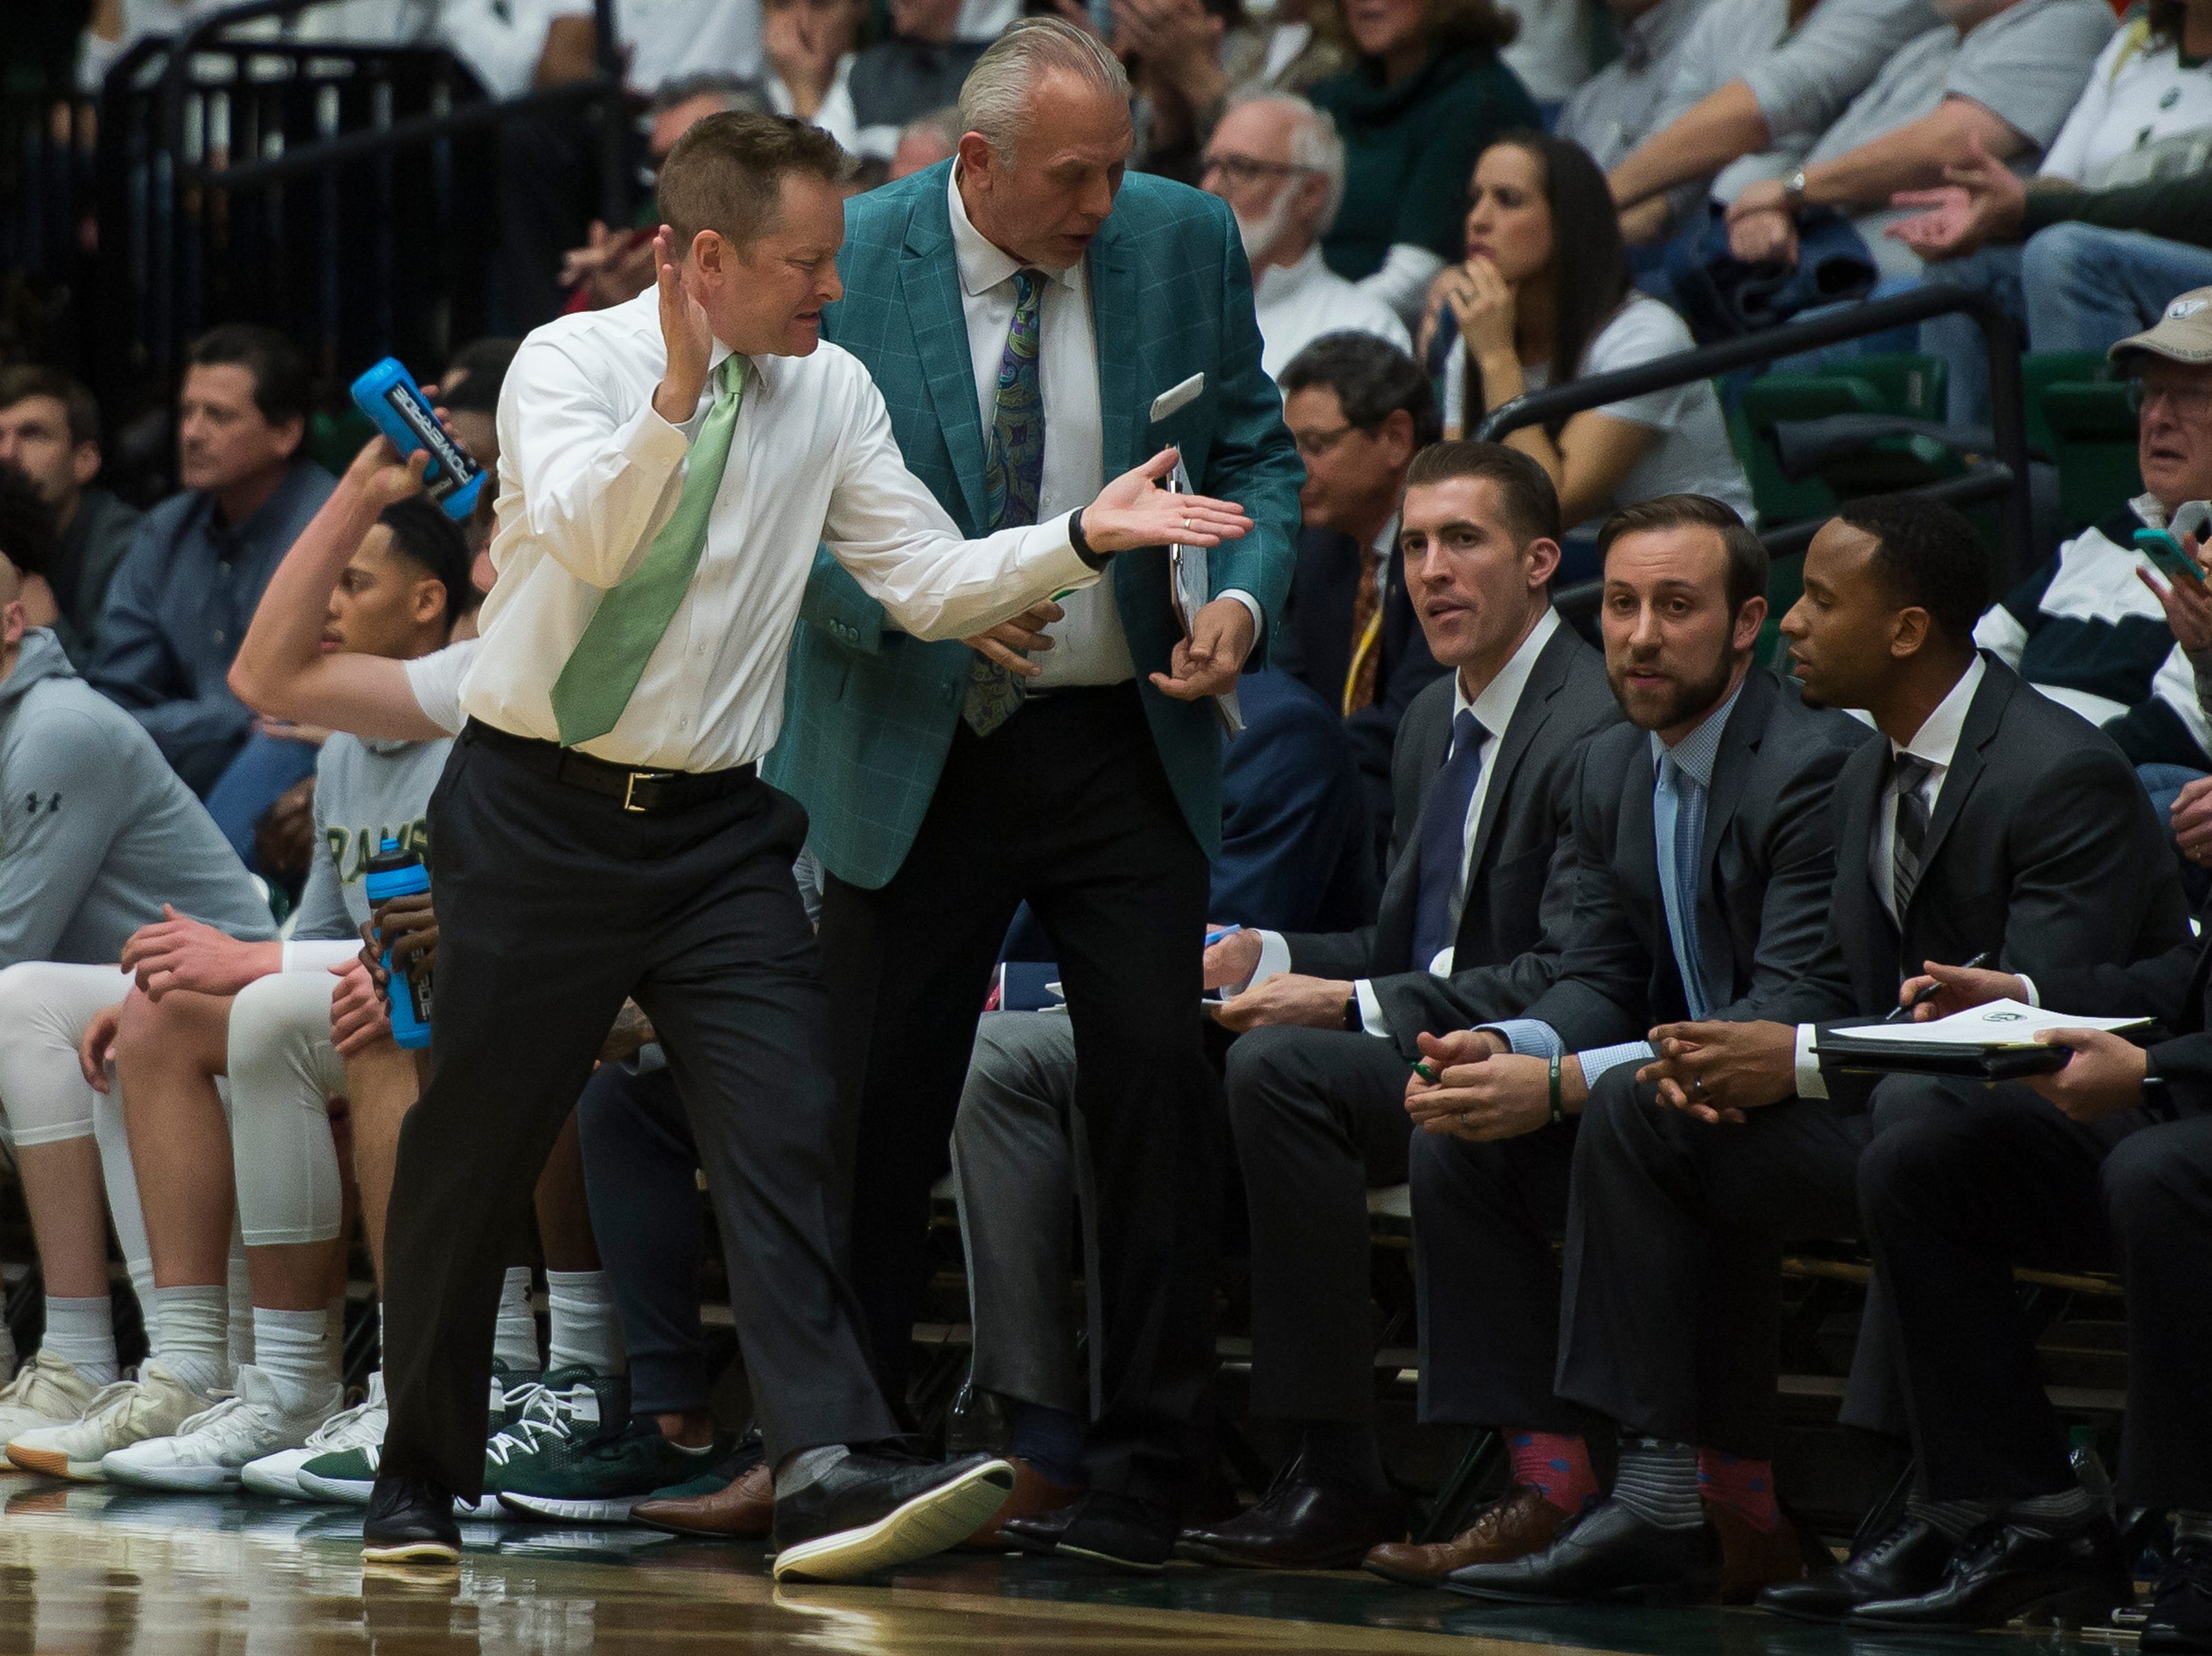 Colorado State University head coach Niko Medved reacts during a game against Arkansas on Wednesday, Dec. 5, 2018, Moby Arena in Fort Collins, Colo.